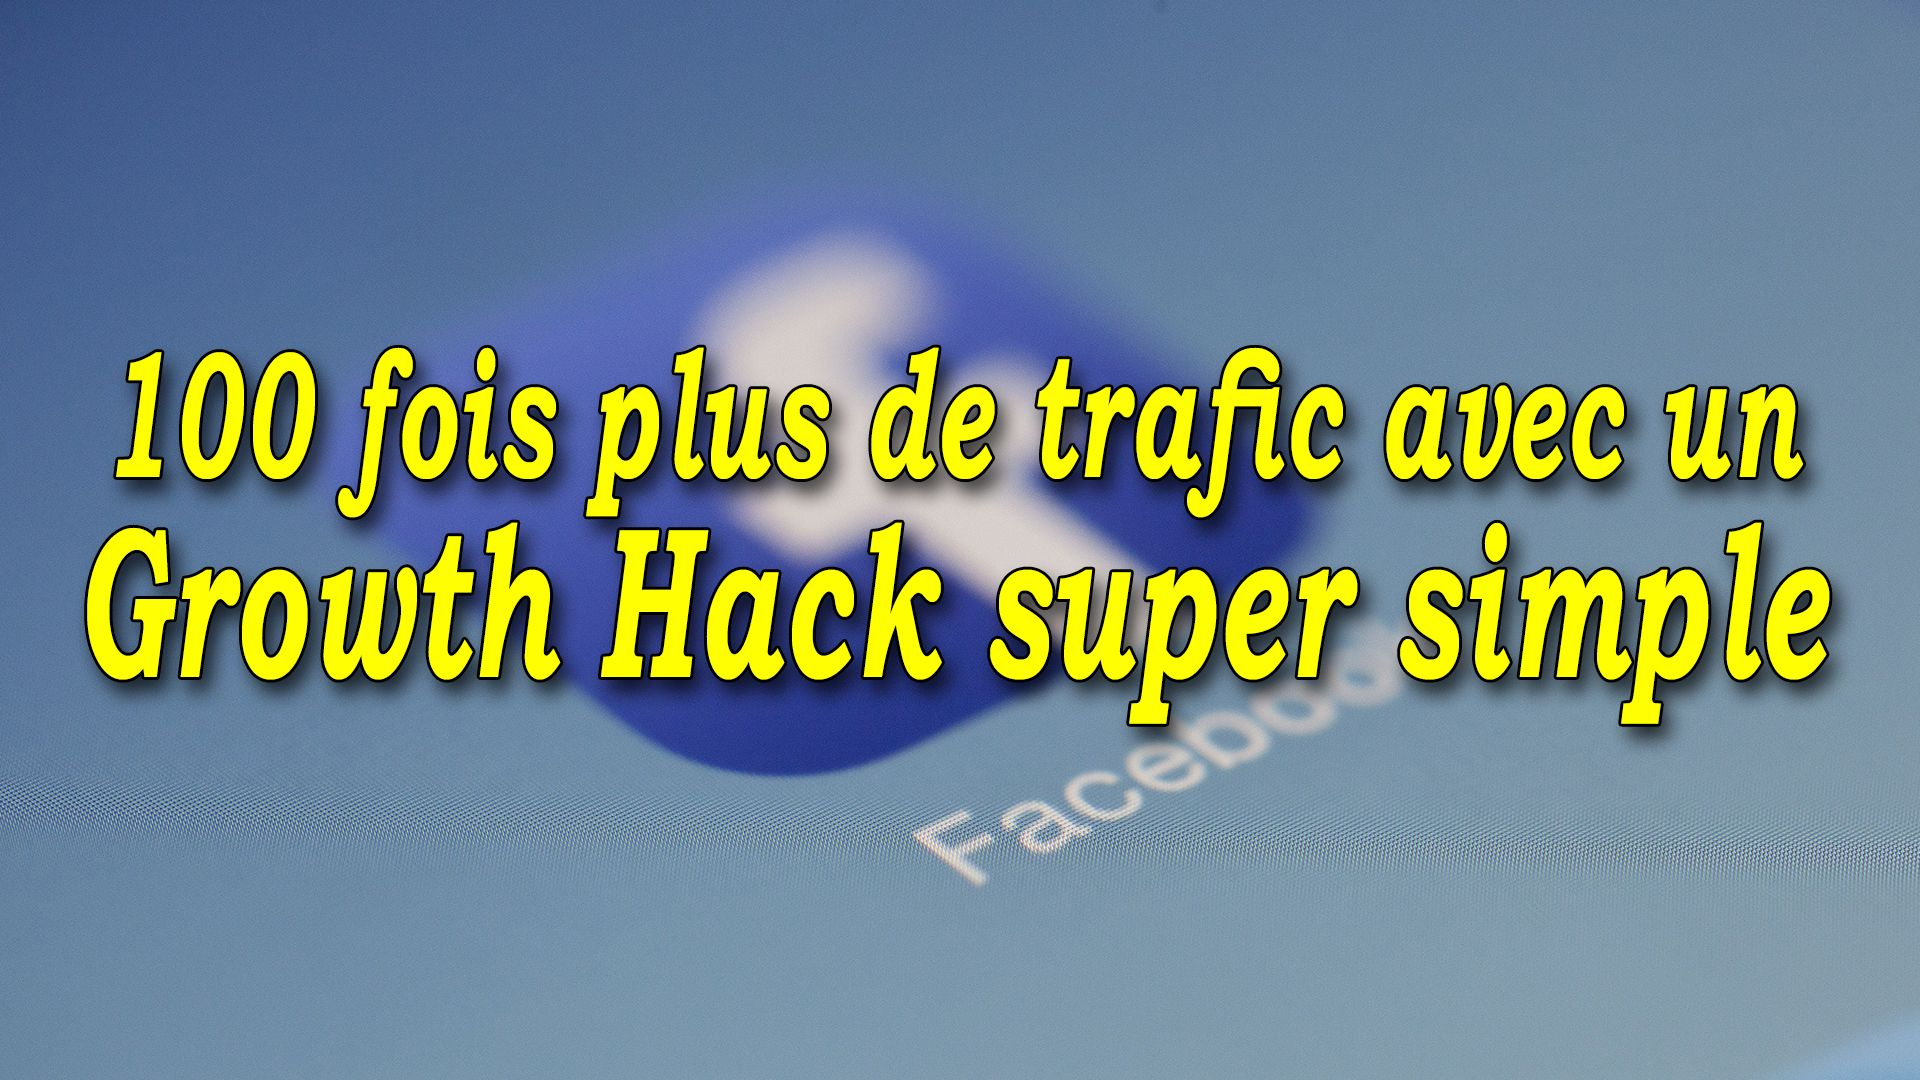 100 fois plus de trafic avec un Growth Hack super simple #GrowthHacking #WebMarketing #FormationGrowthHacking #CentreDeFormationFrance #TunnelAARRR #AARRR #SocialMedia #CommunityManagement #SEO #Facebook #FacebookAds #FacebookAdvertising